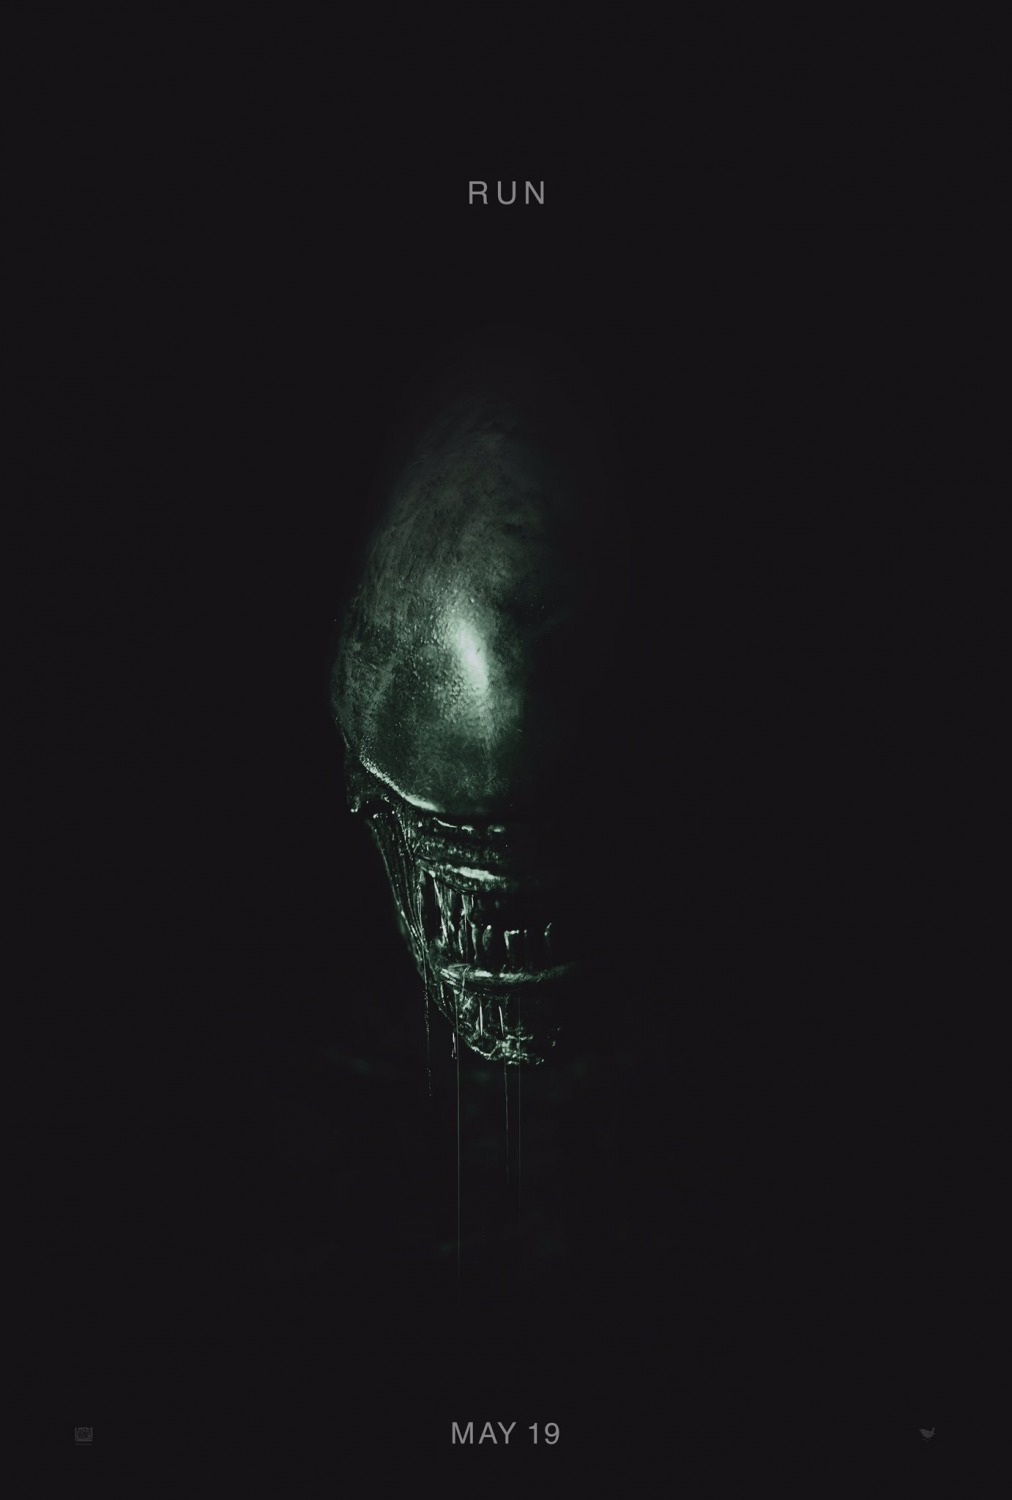 Prólogo de Alien Covenant.